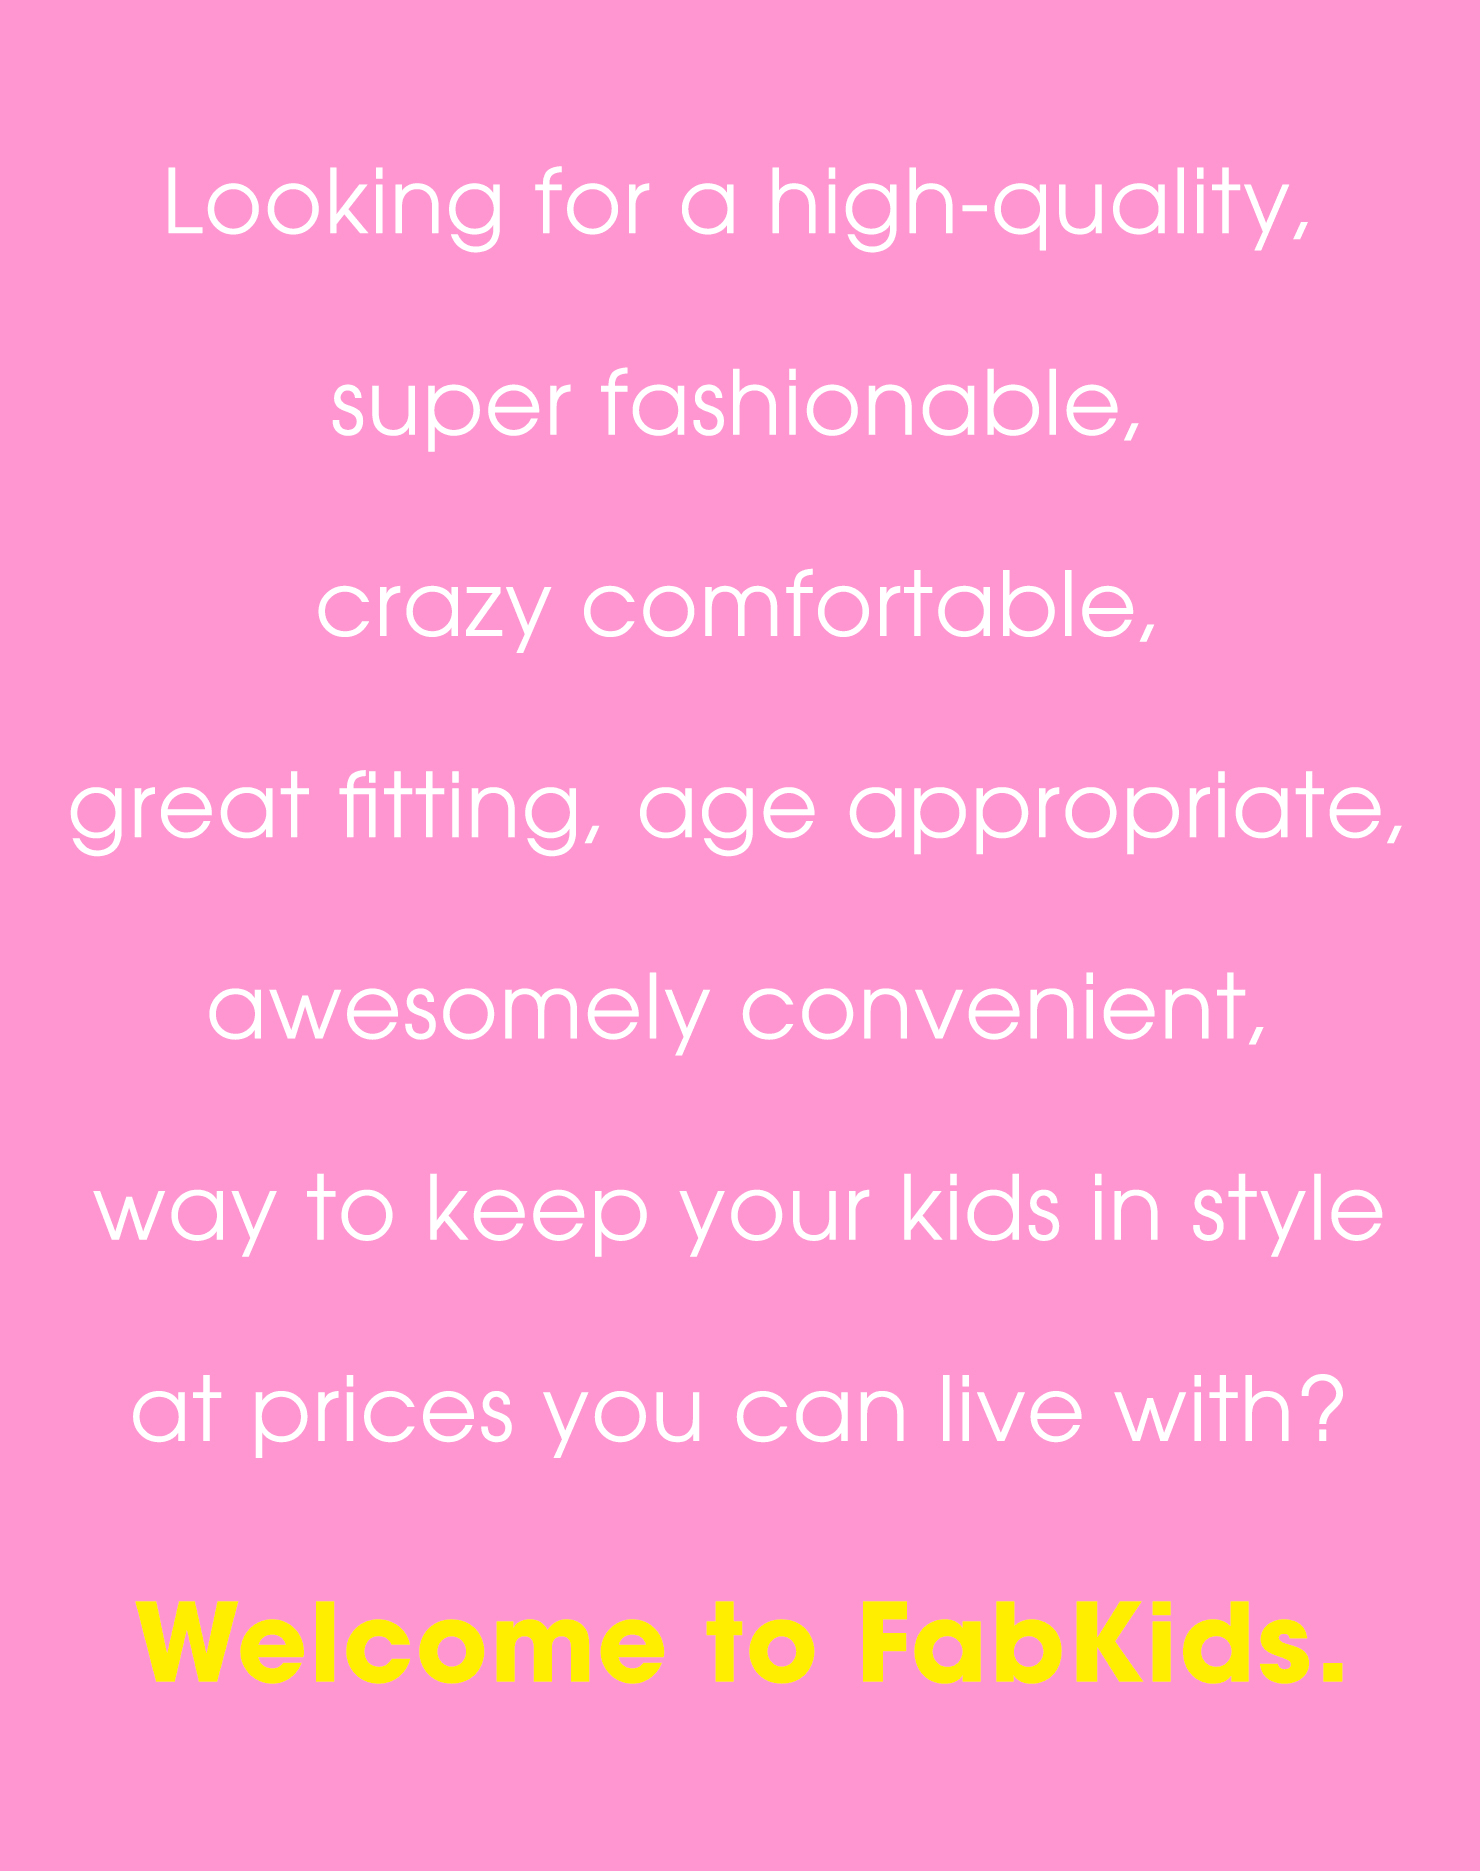 Looking for a high-quality, super fashionable, crazy comfortable, great fitting, age appropriate, awesomely convenient, way to keep your kids in style at prices you can live with? Welcome to FabKids.